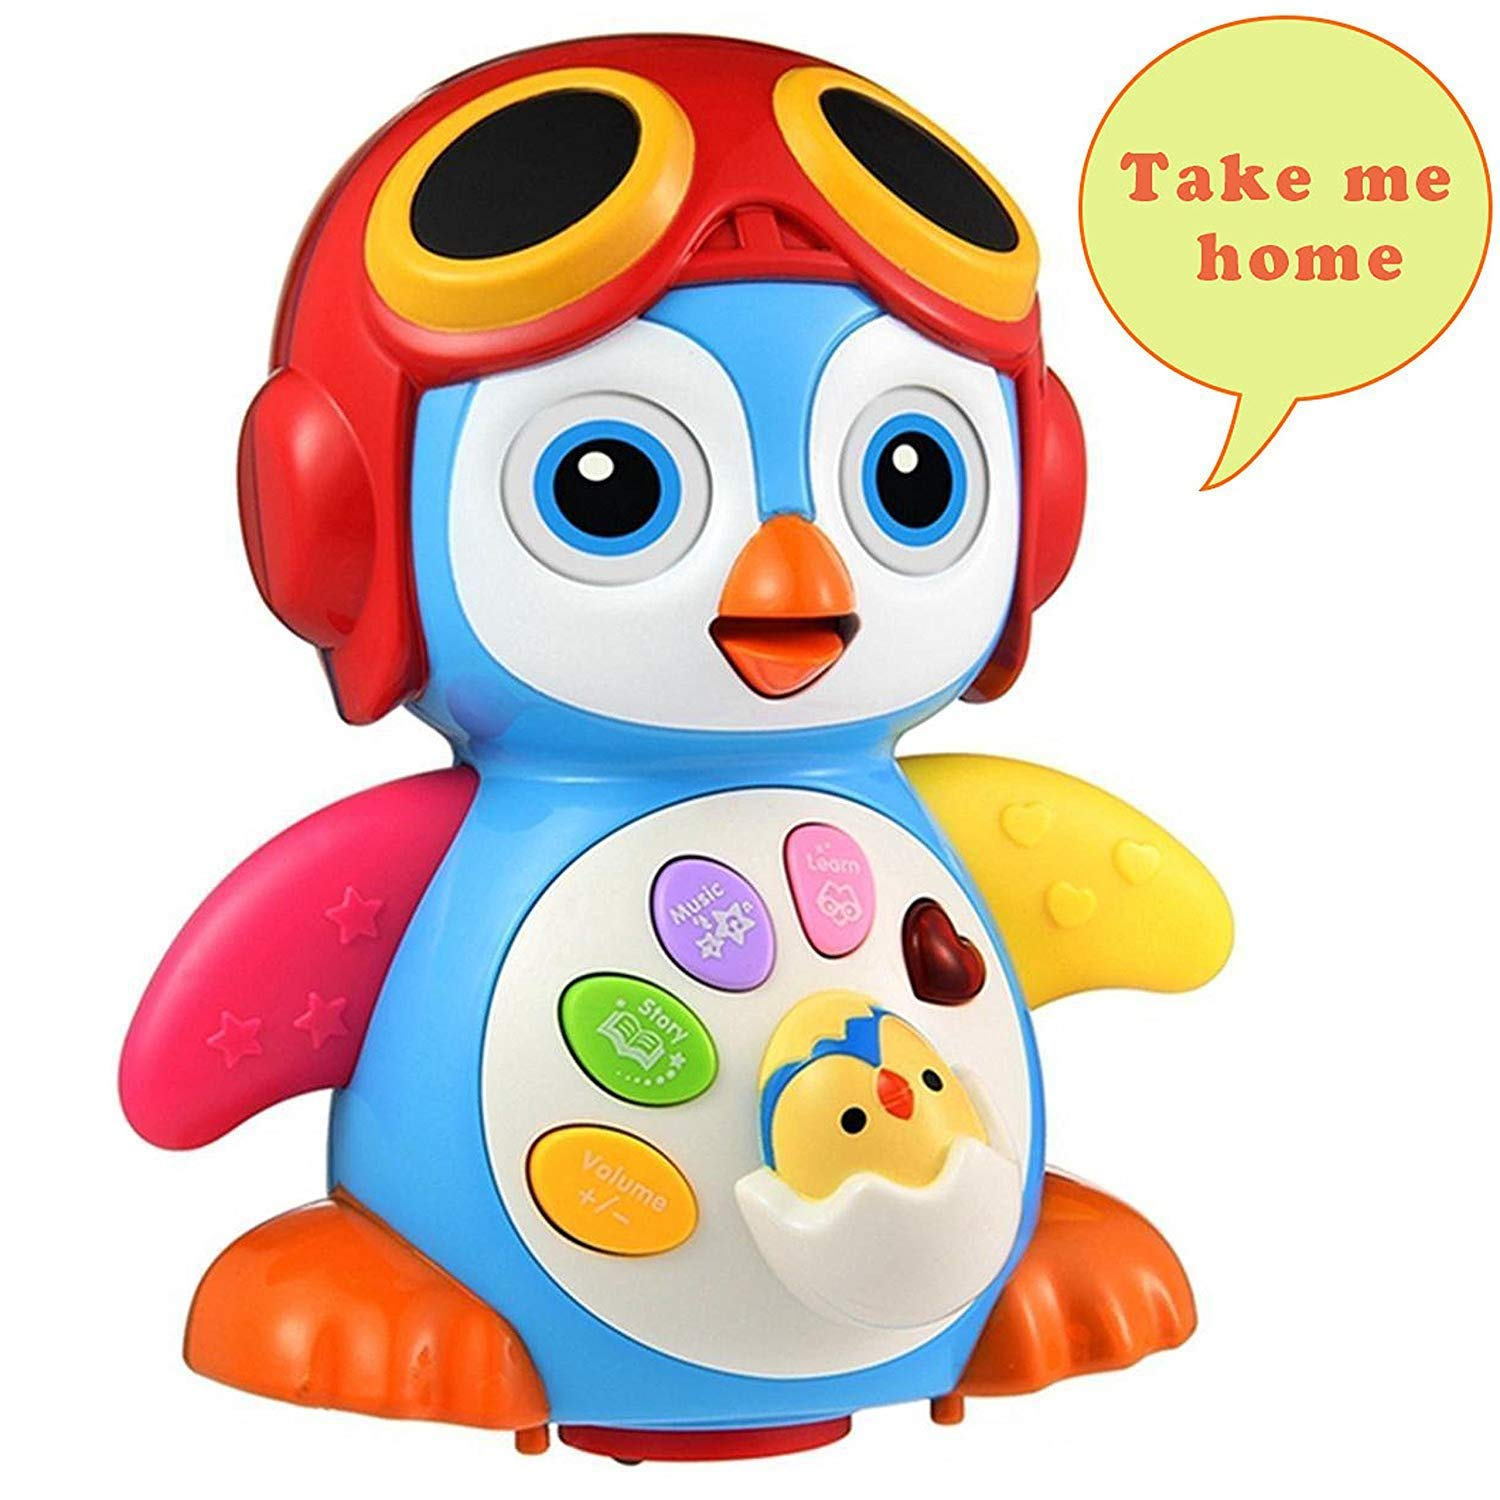 HOMOFY Baby Toys Super Fun Musical Dancing Penguin EQ& Intelligence Training Swing,Songing,Walking,Light,Tell a Story -New Toys for Girls and Boys Kids or Toddlers